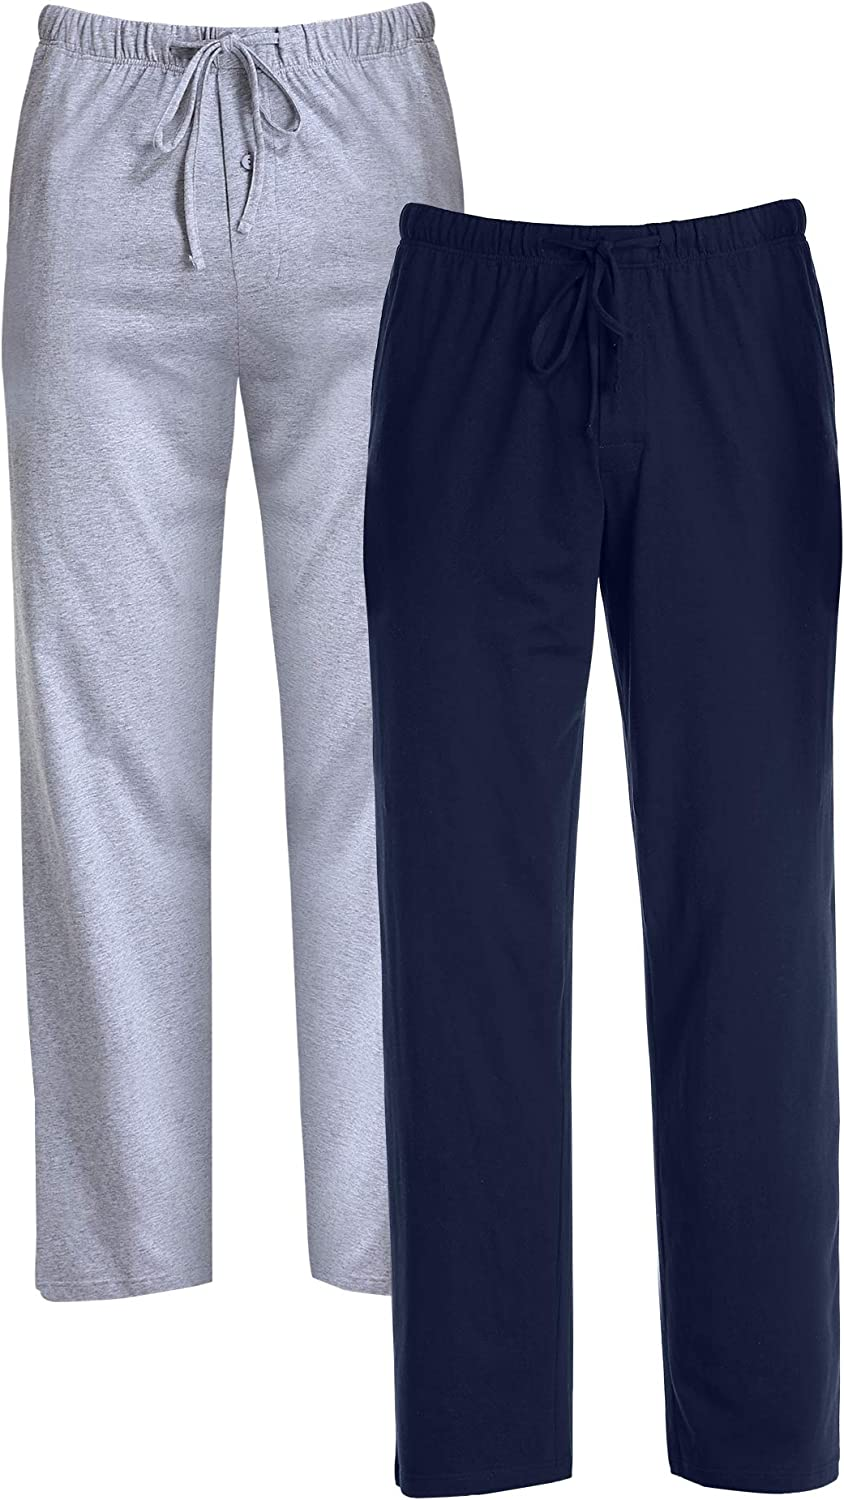 COLORFULLEAF 100% Cotton Pajama Pants for Men Soft Knit Sleep Bottoms with Pockets